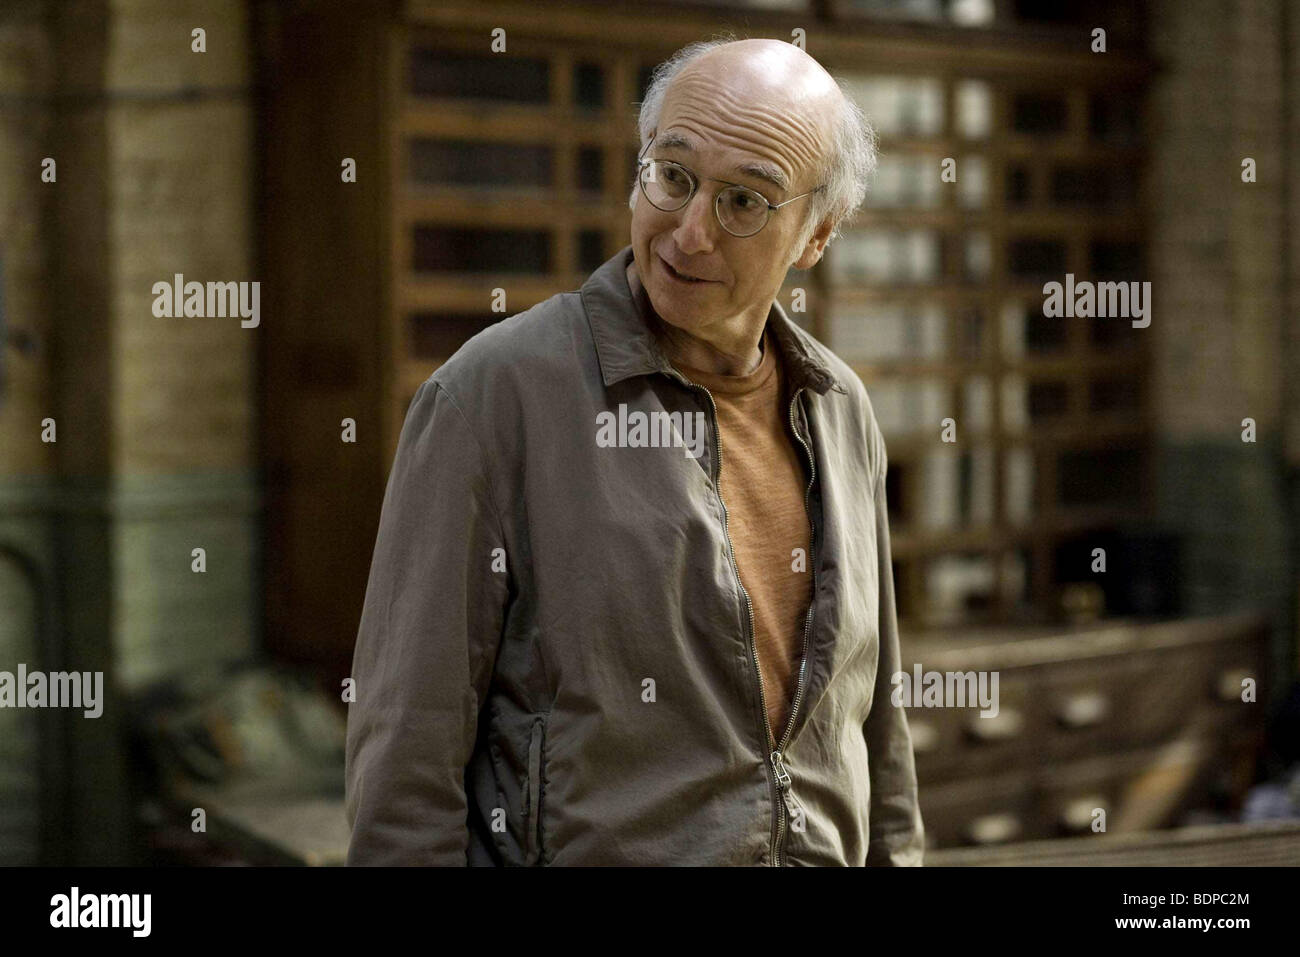 Whatever Works Year : 2009 Director : Woody Allen Larry David - Stock Image